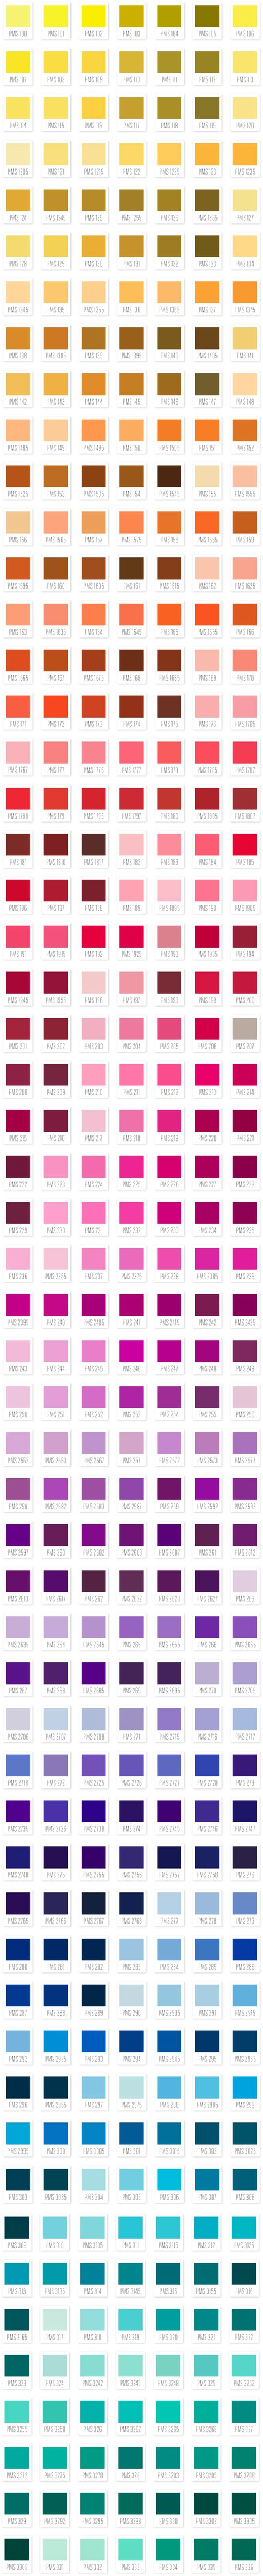 pantone ink matches for letterpress printing graphics pinterest pantone pantone color and pantone color chart - Pantone Color Swatch Book